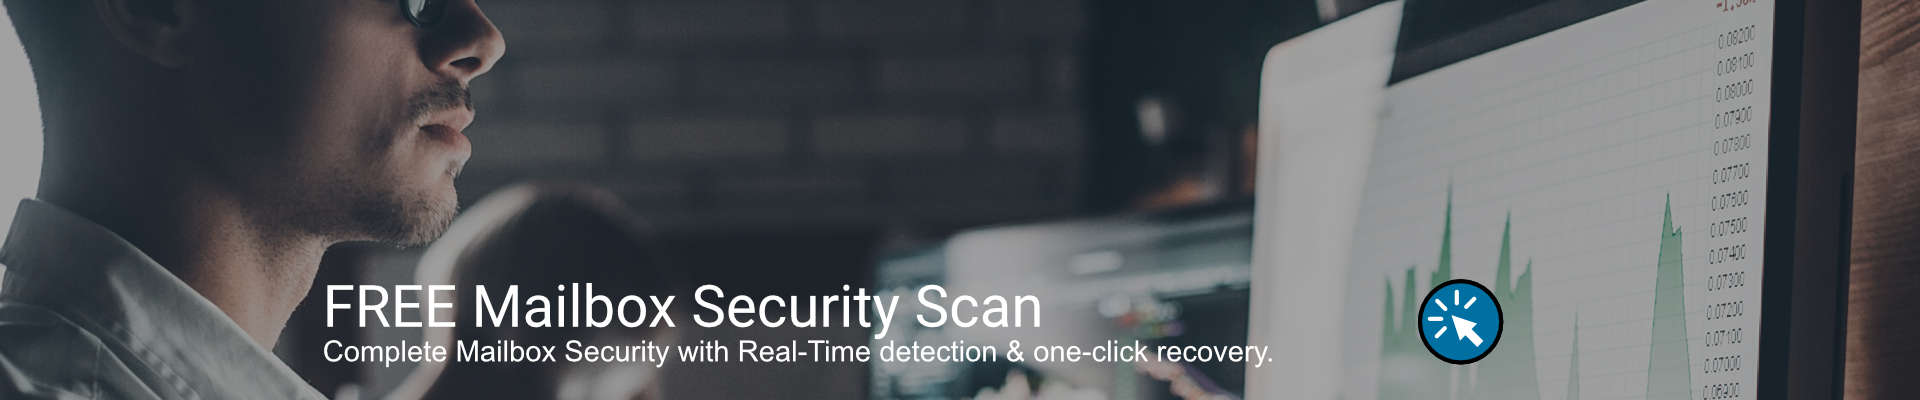 FREE Mailbox Security Scan